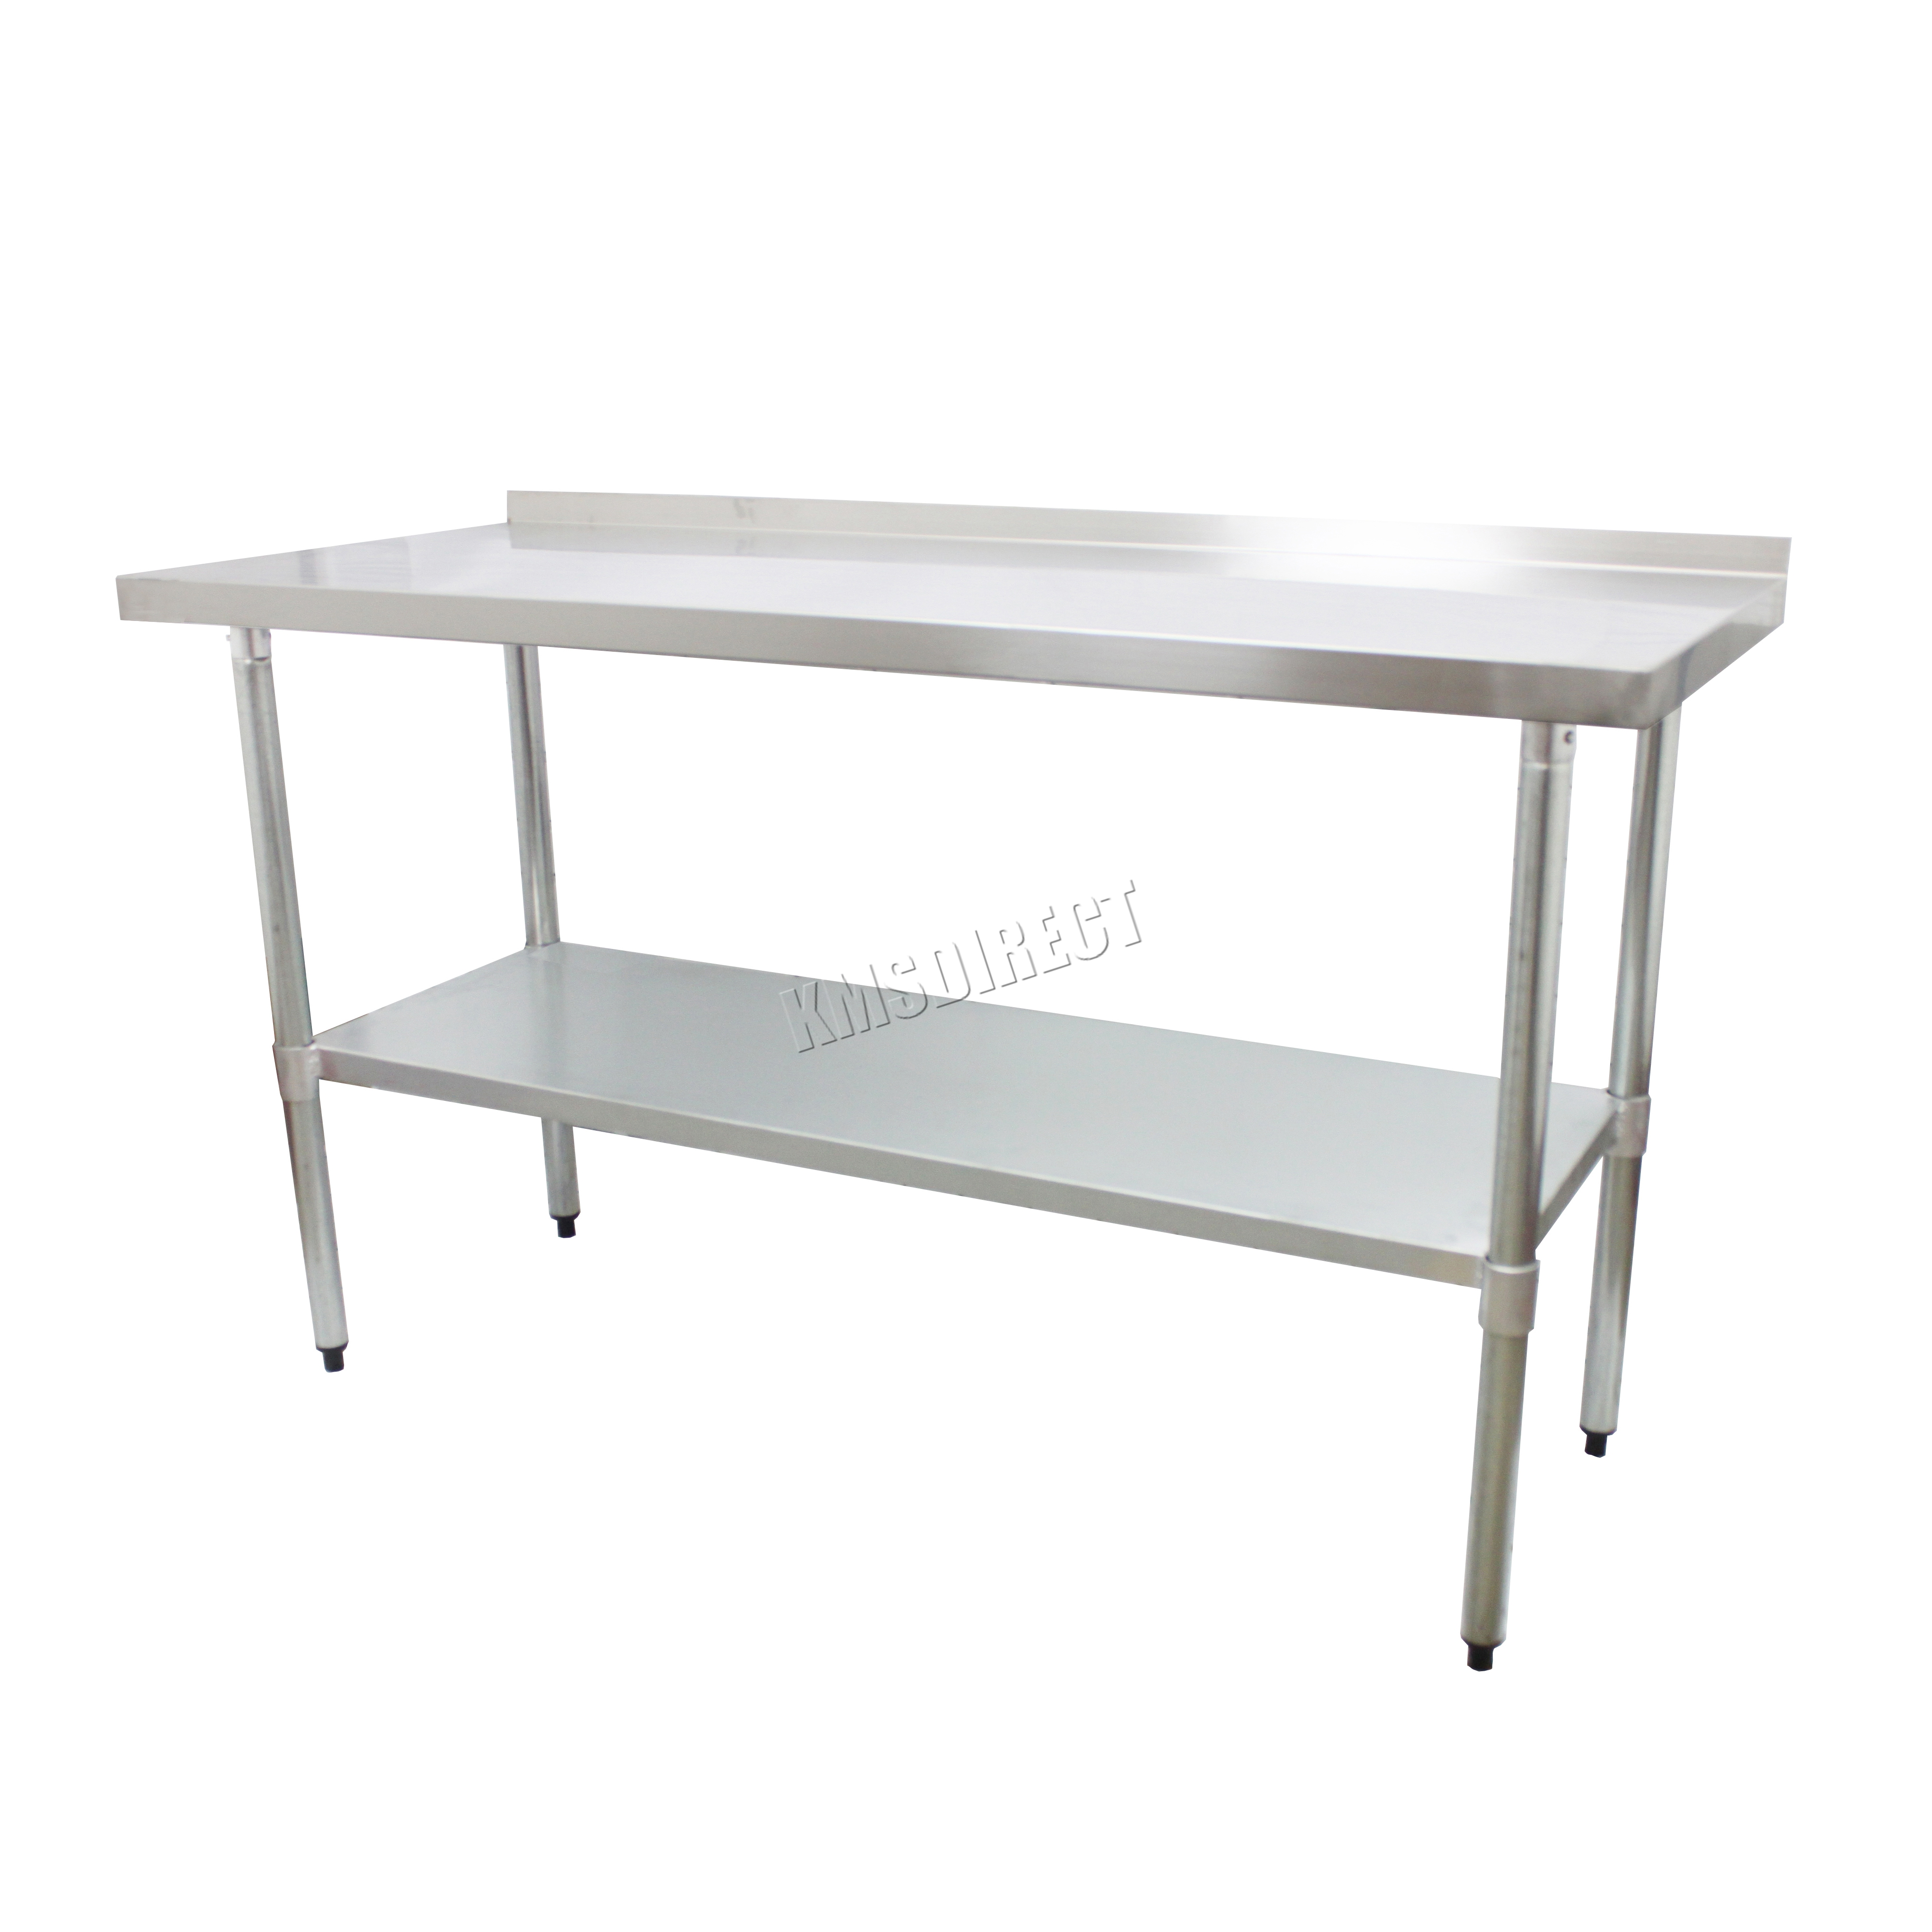 WestWood Stainless Steel Commercial Catering Table Work Bench ...